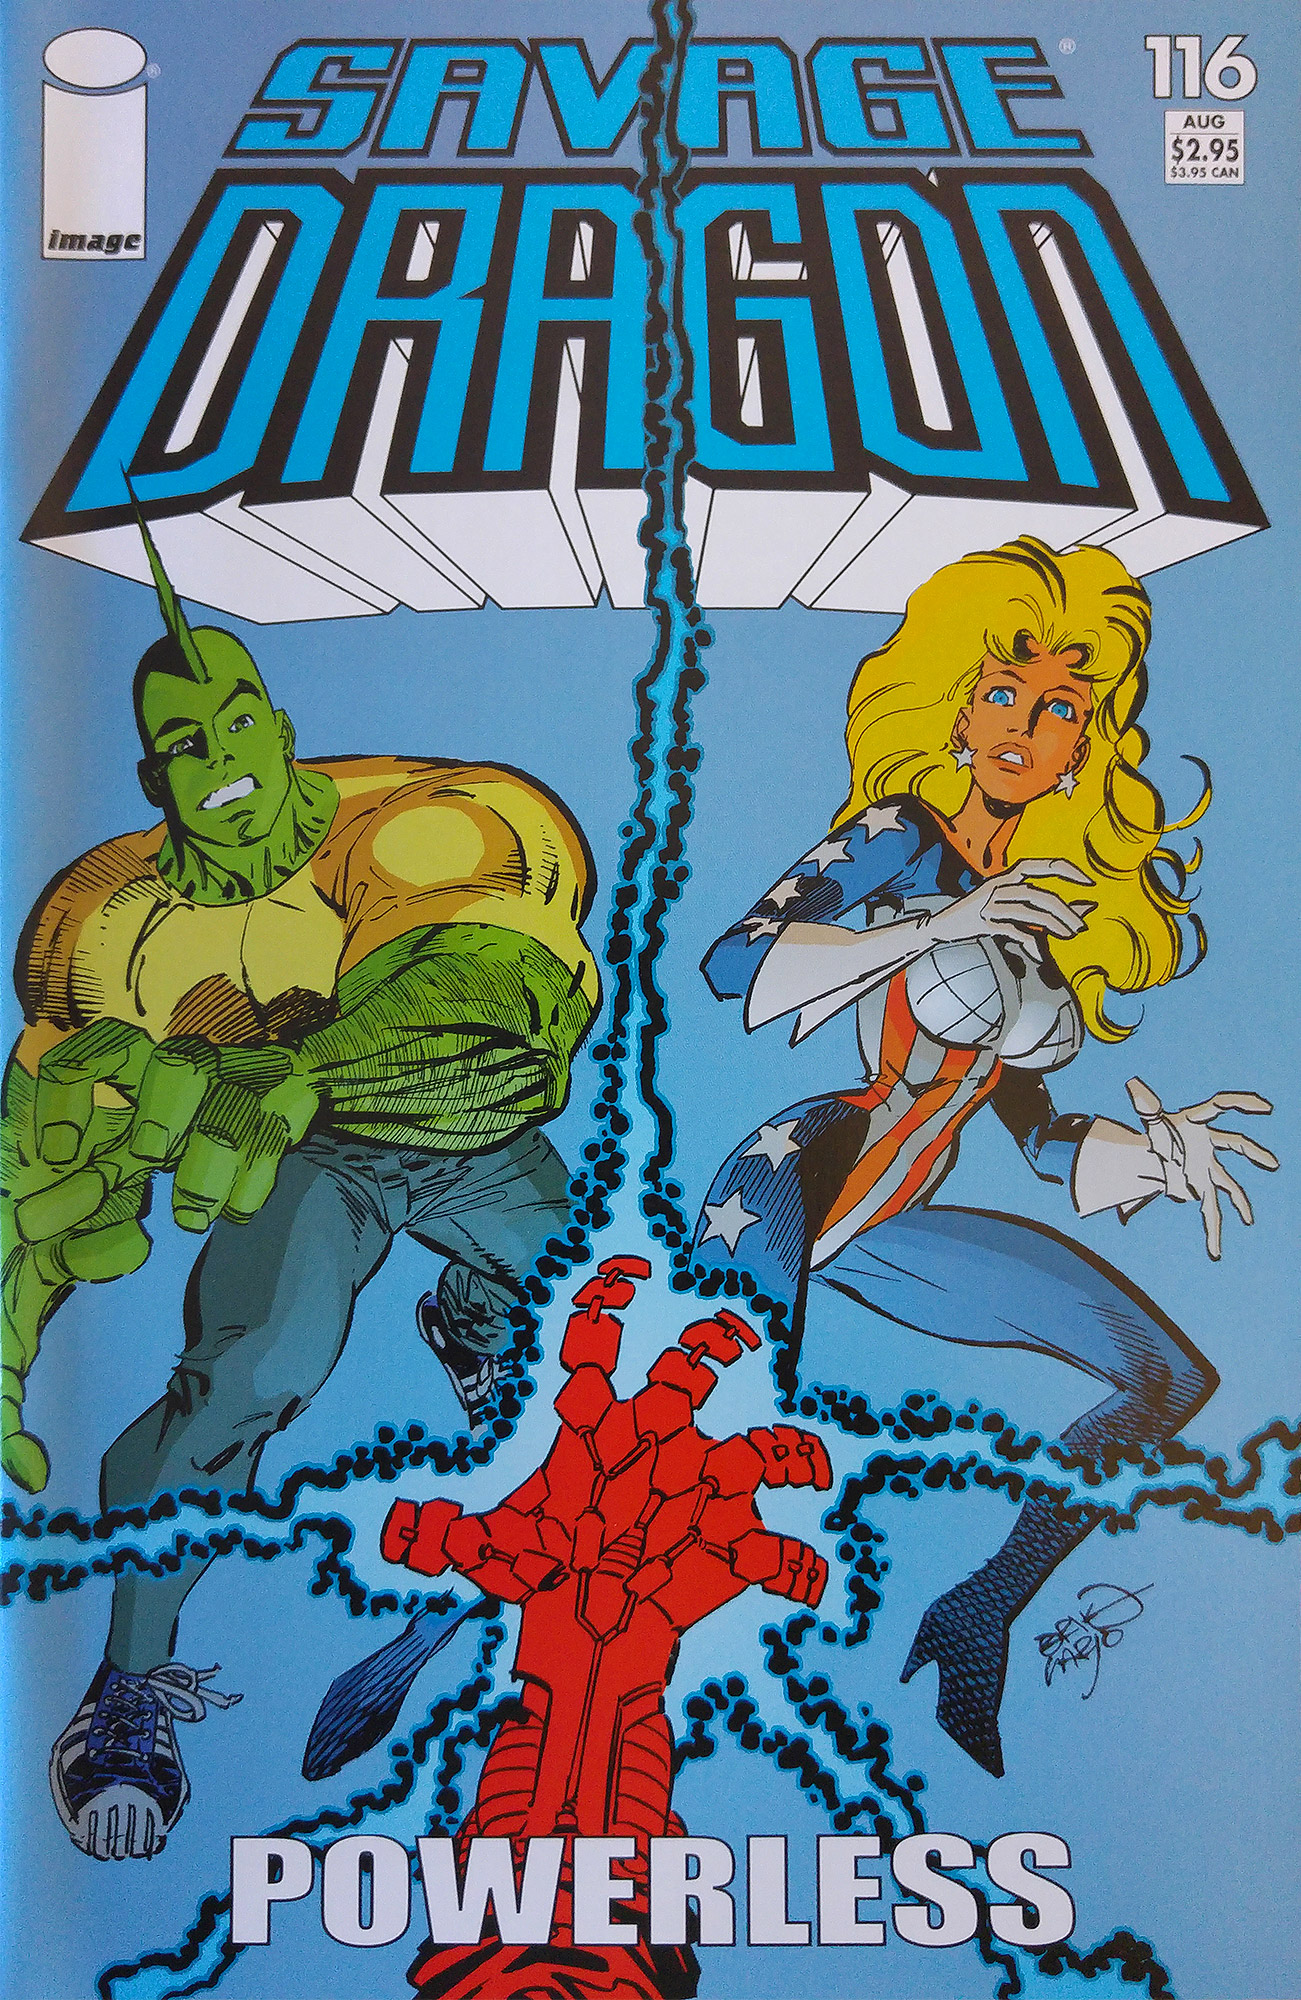 Cover Savage Dragon Vol.2 #116